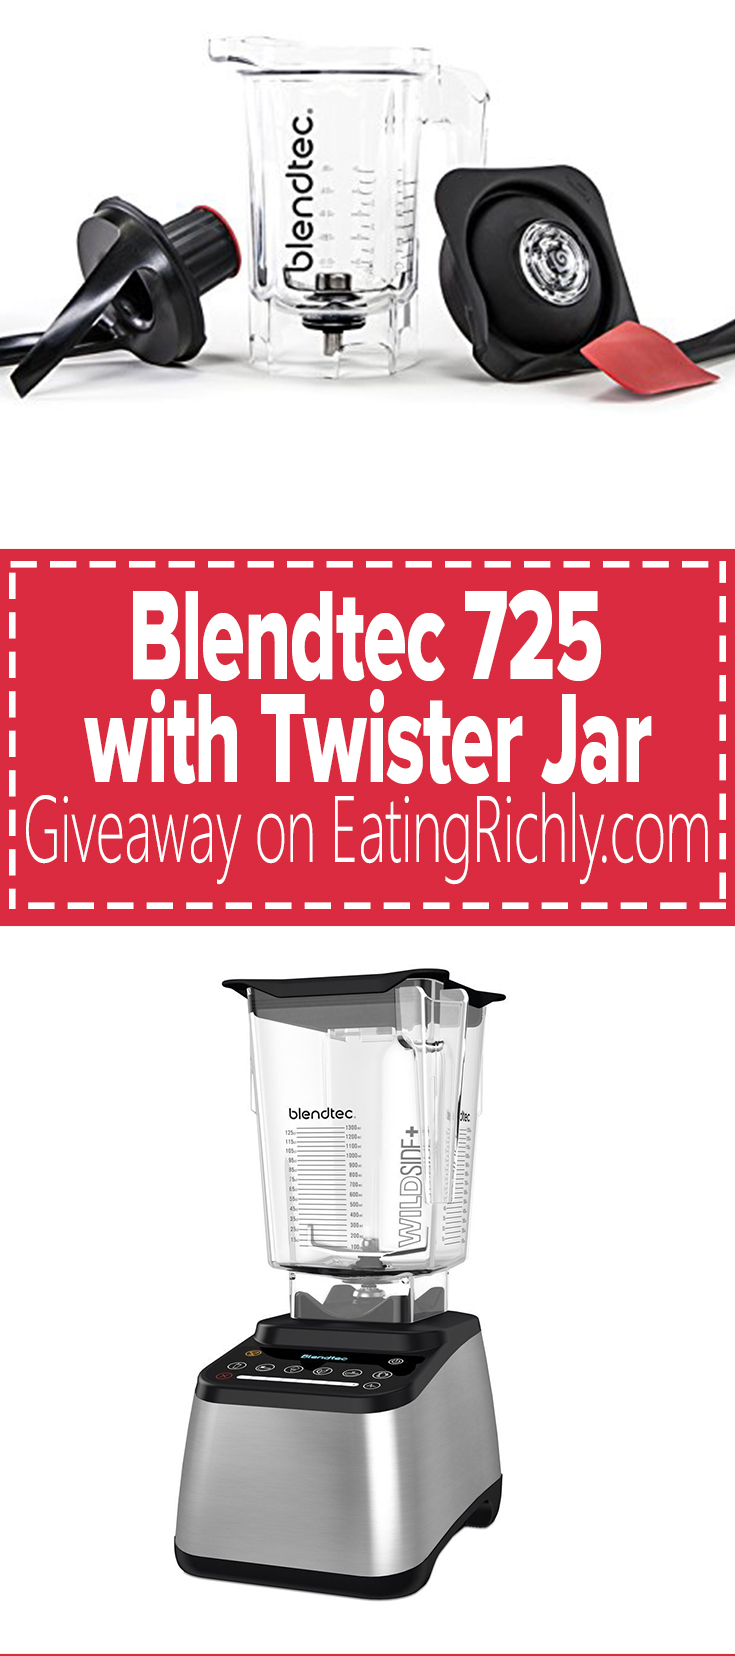 Blendtec Twister Jar review and giveaway! Plus recipe for coconut chocolate macadamia nut butter.Just four ingredients & vegan, dairy free, & paleo. You will not believe how good it is! From EatingRichly.com